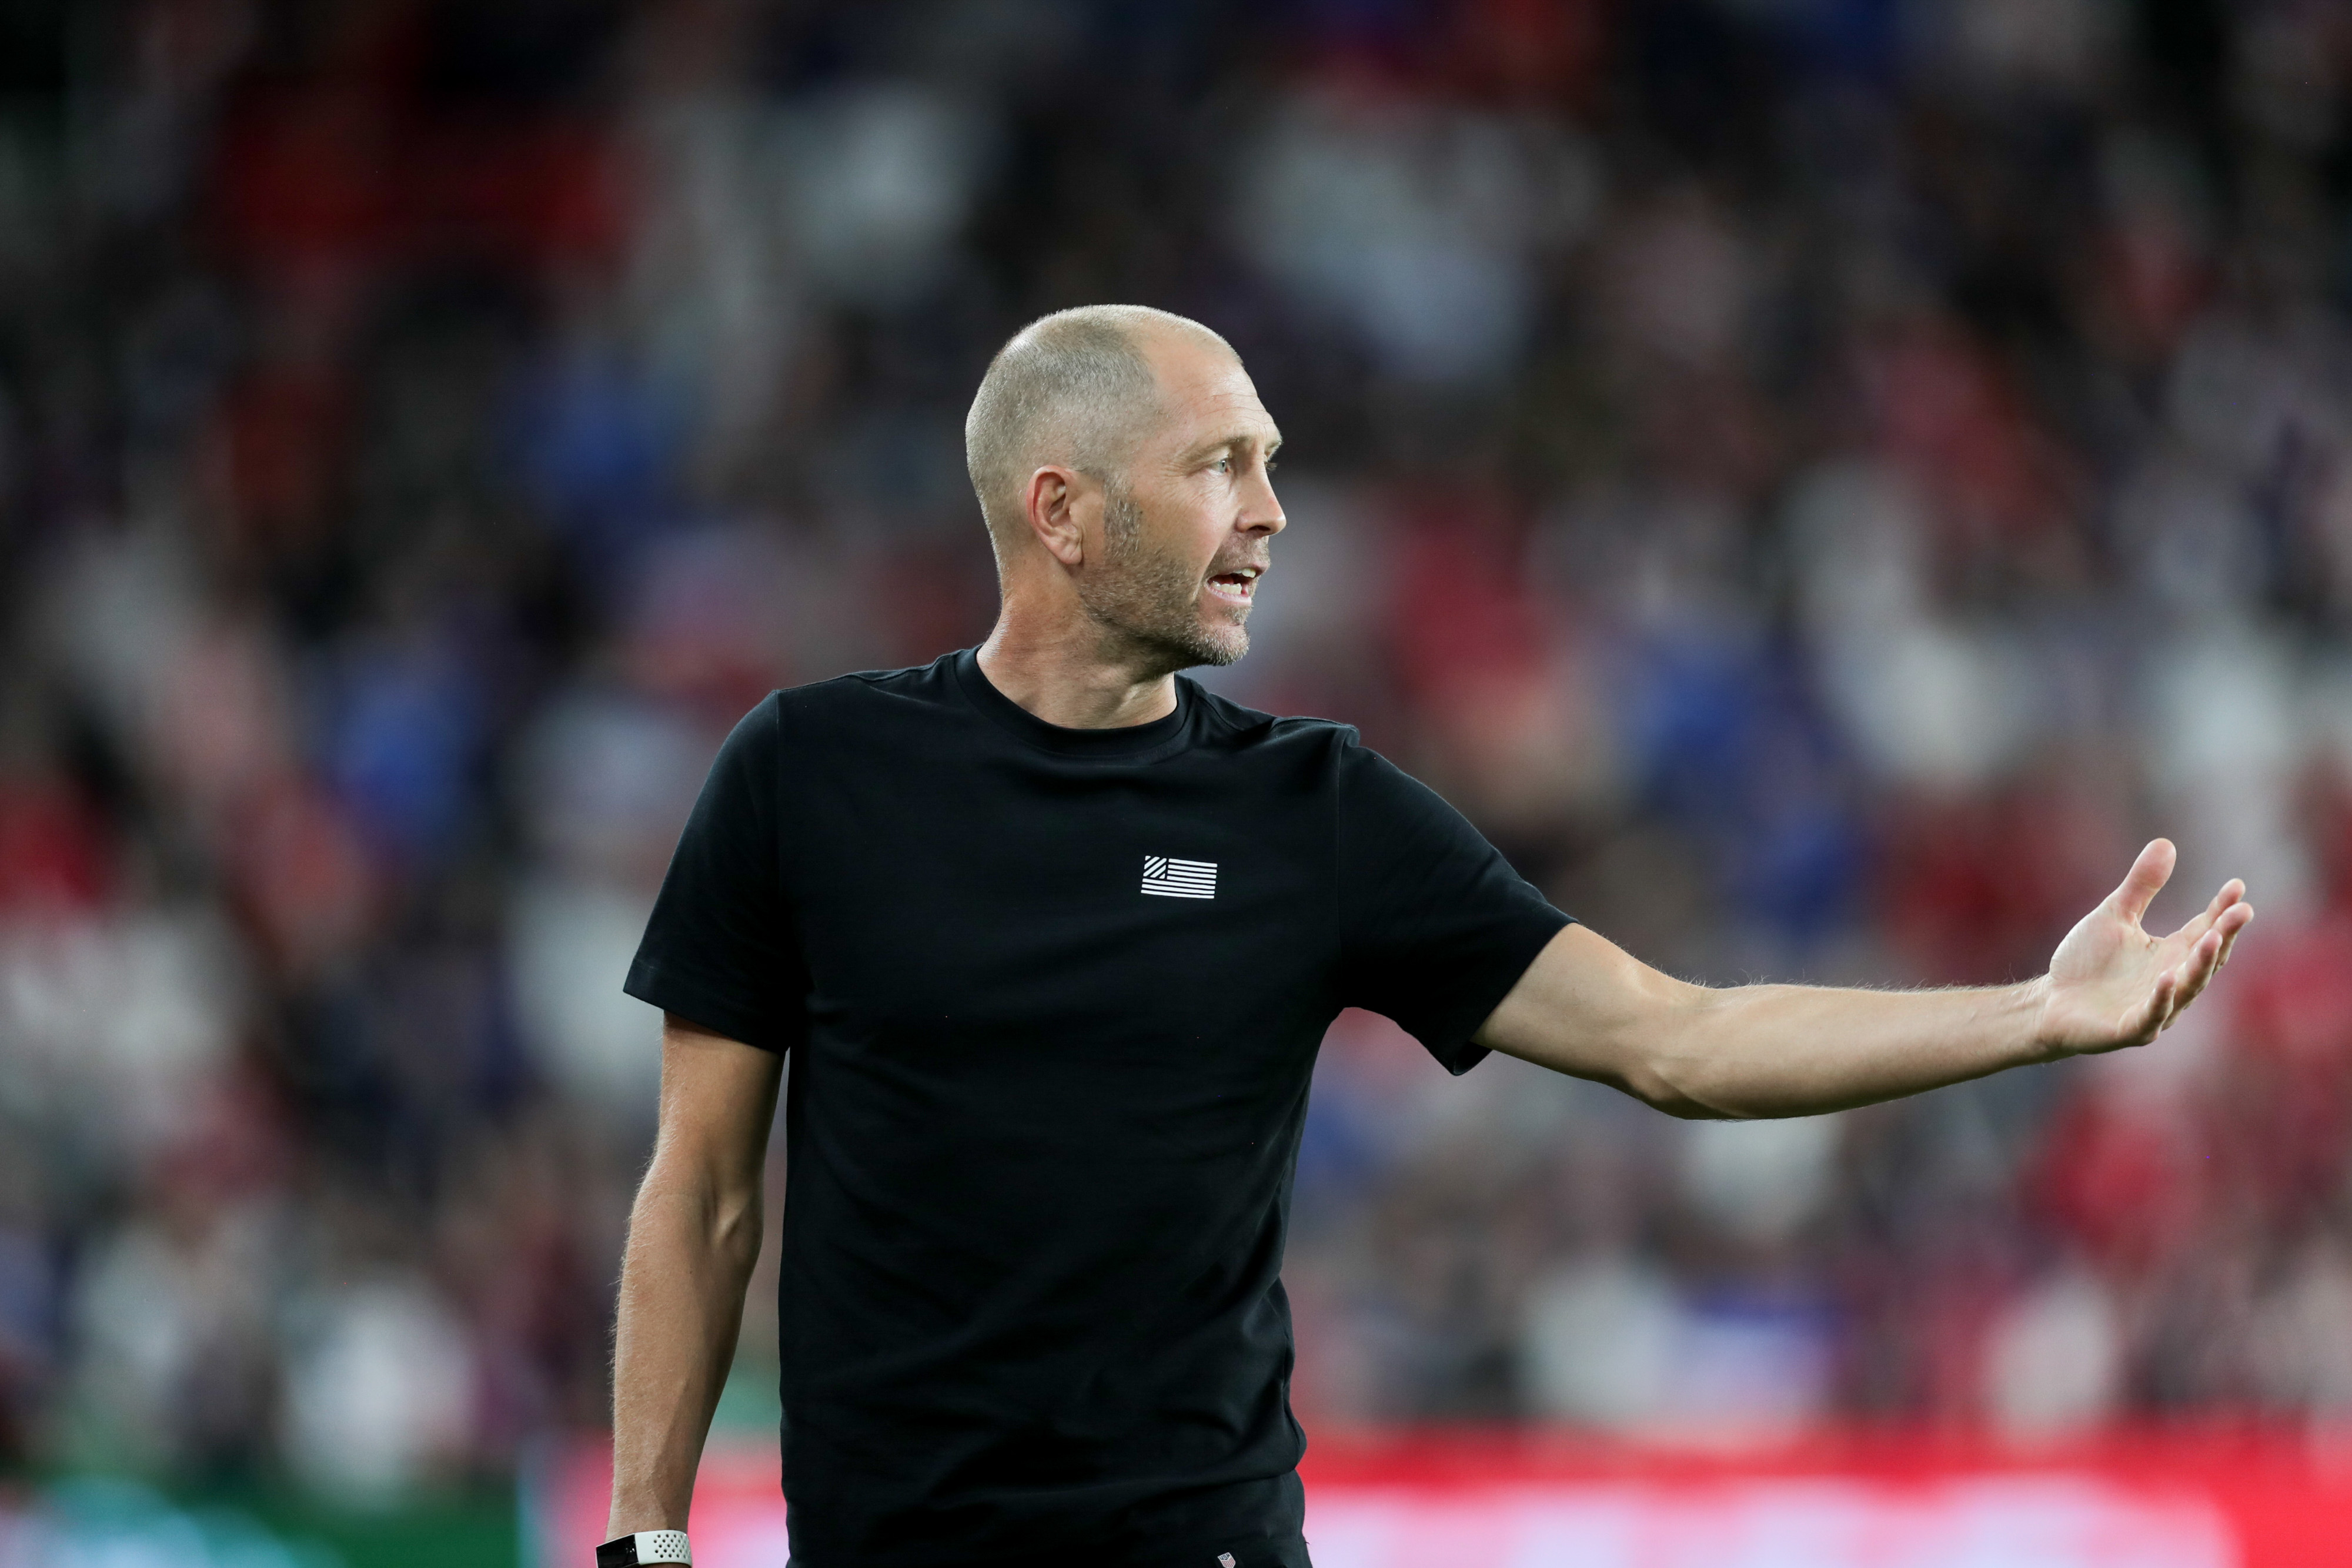 Costa Rica v United States: 2022 World Cup Qualifying